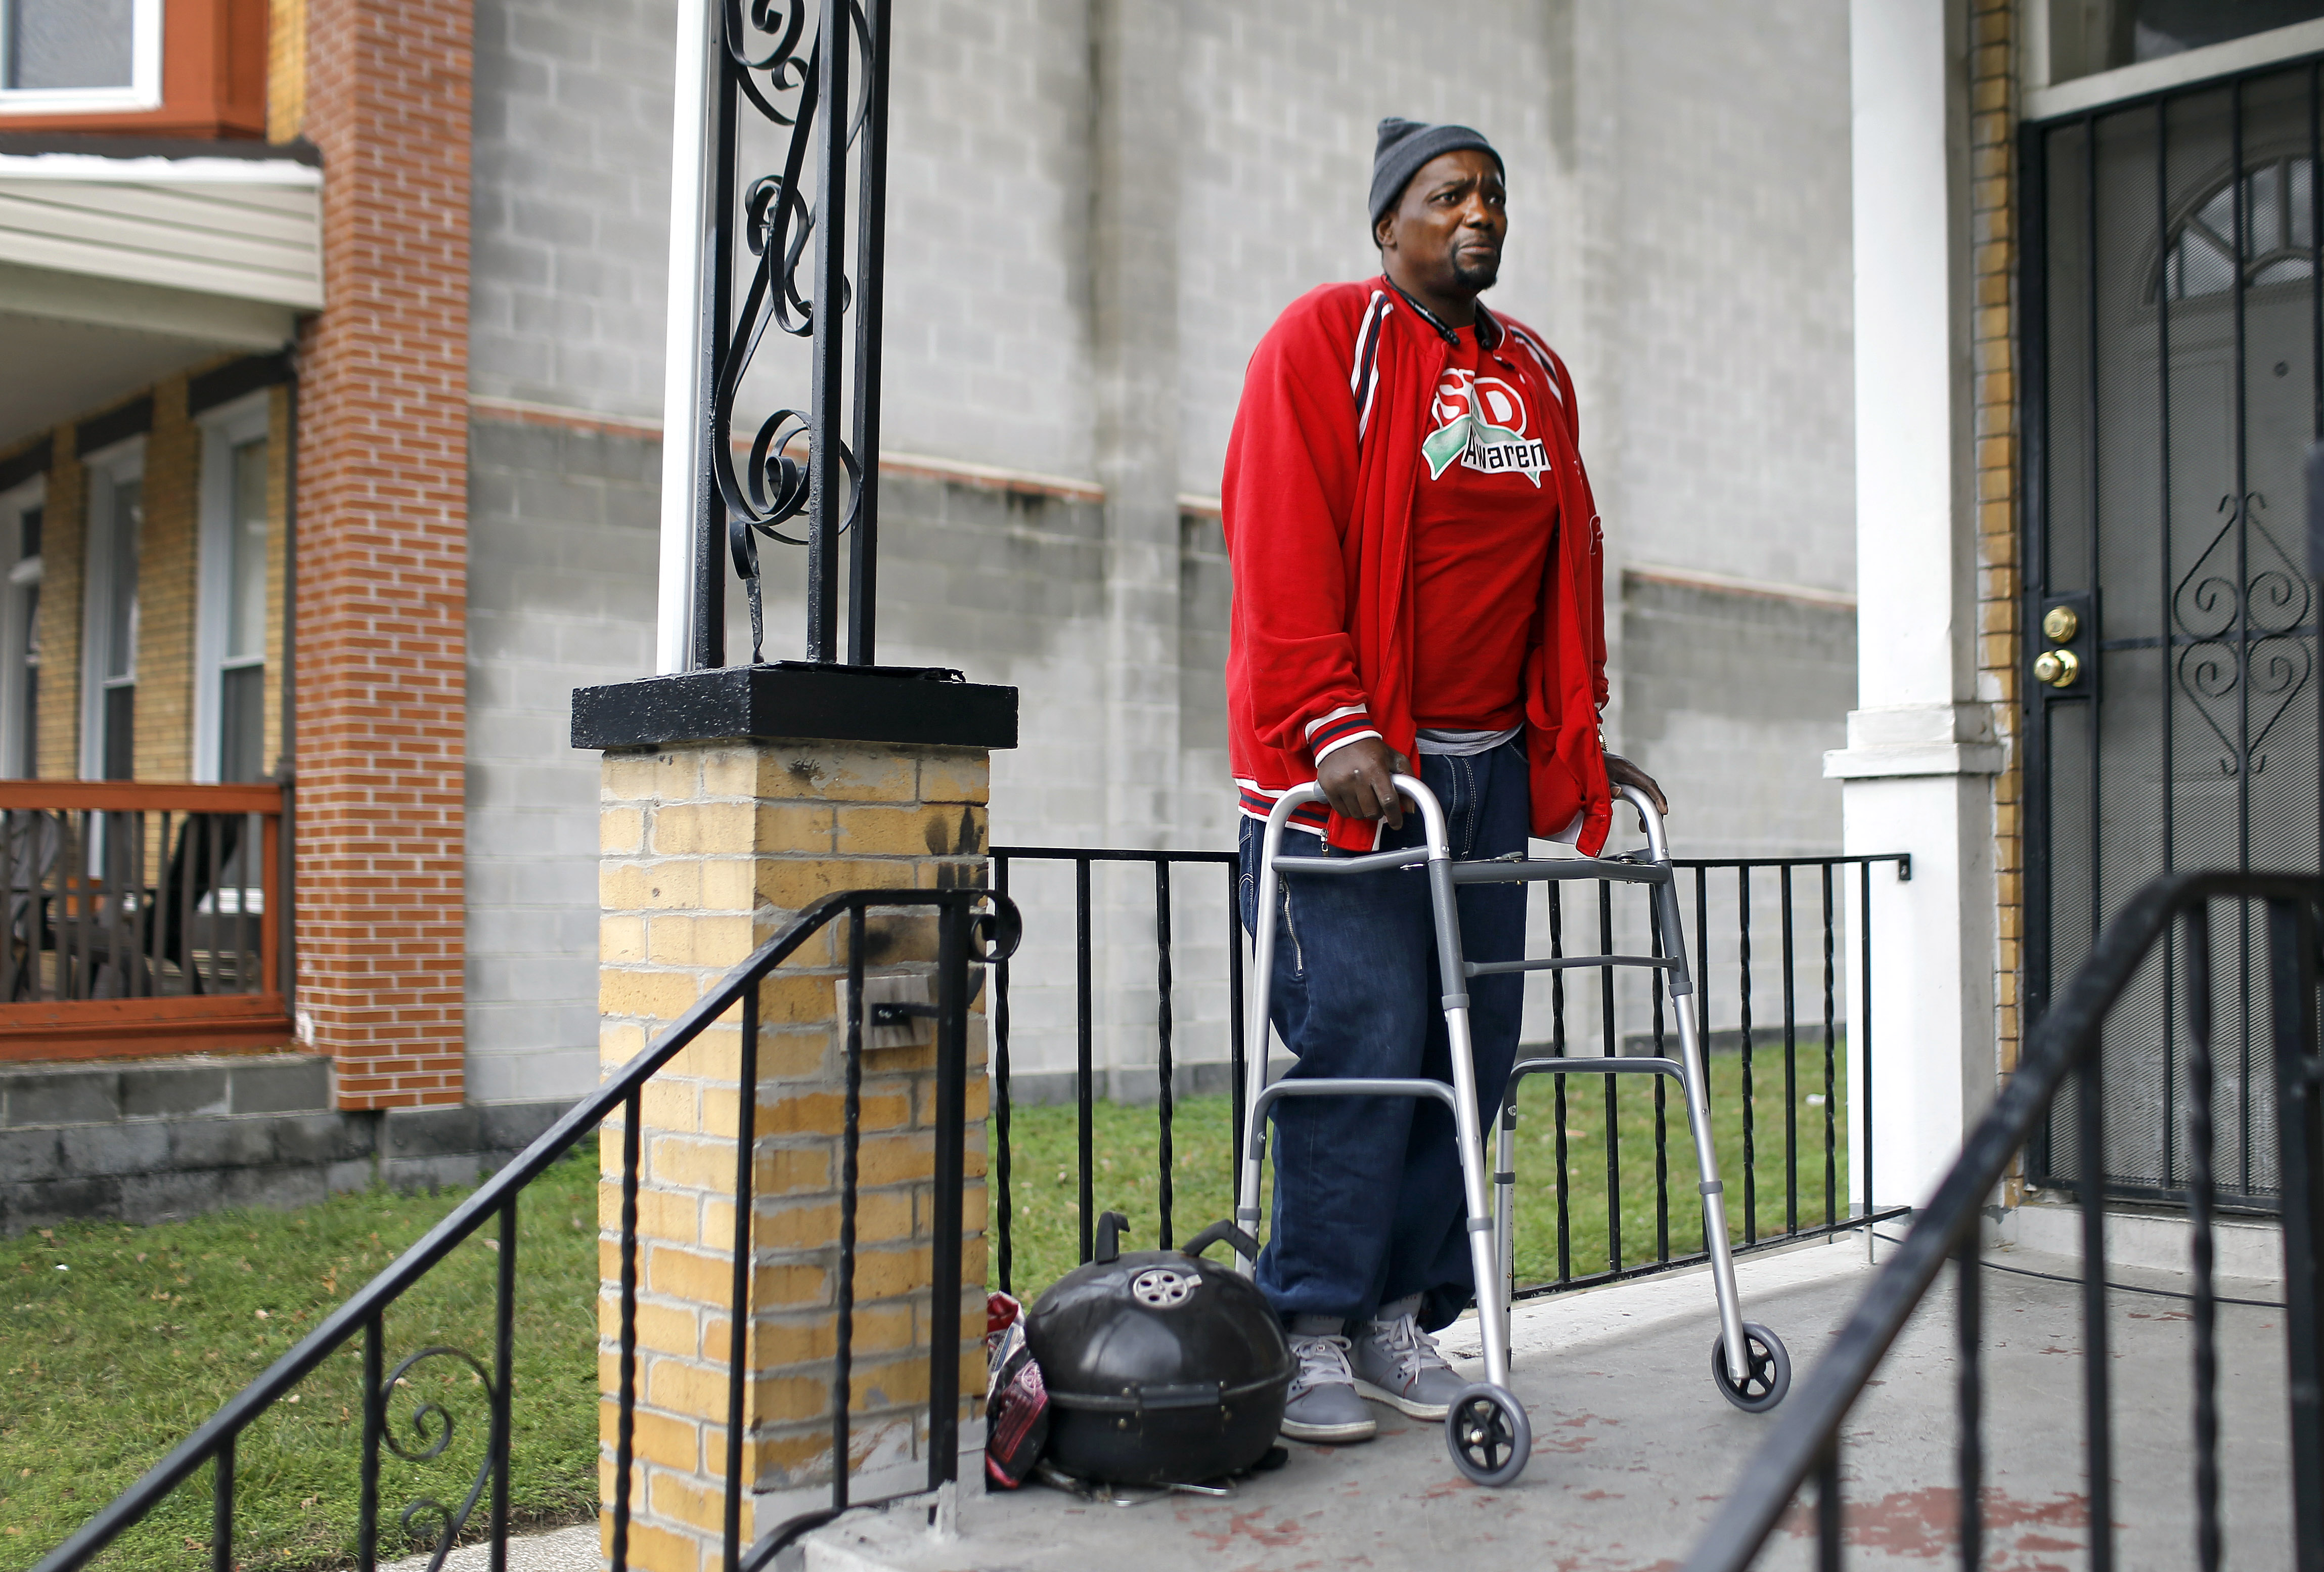 30 2015 photo clifton gerald a survivor of two instances of gun violence stands on his front porch in baltimore geralds life was twice saved by